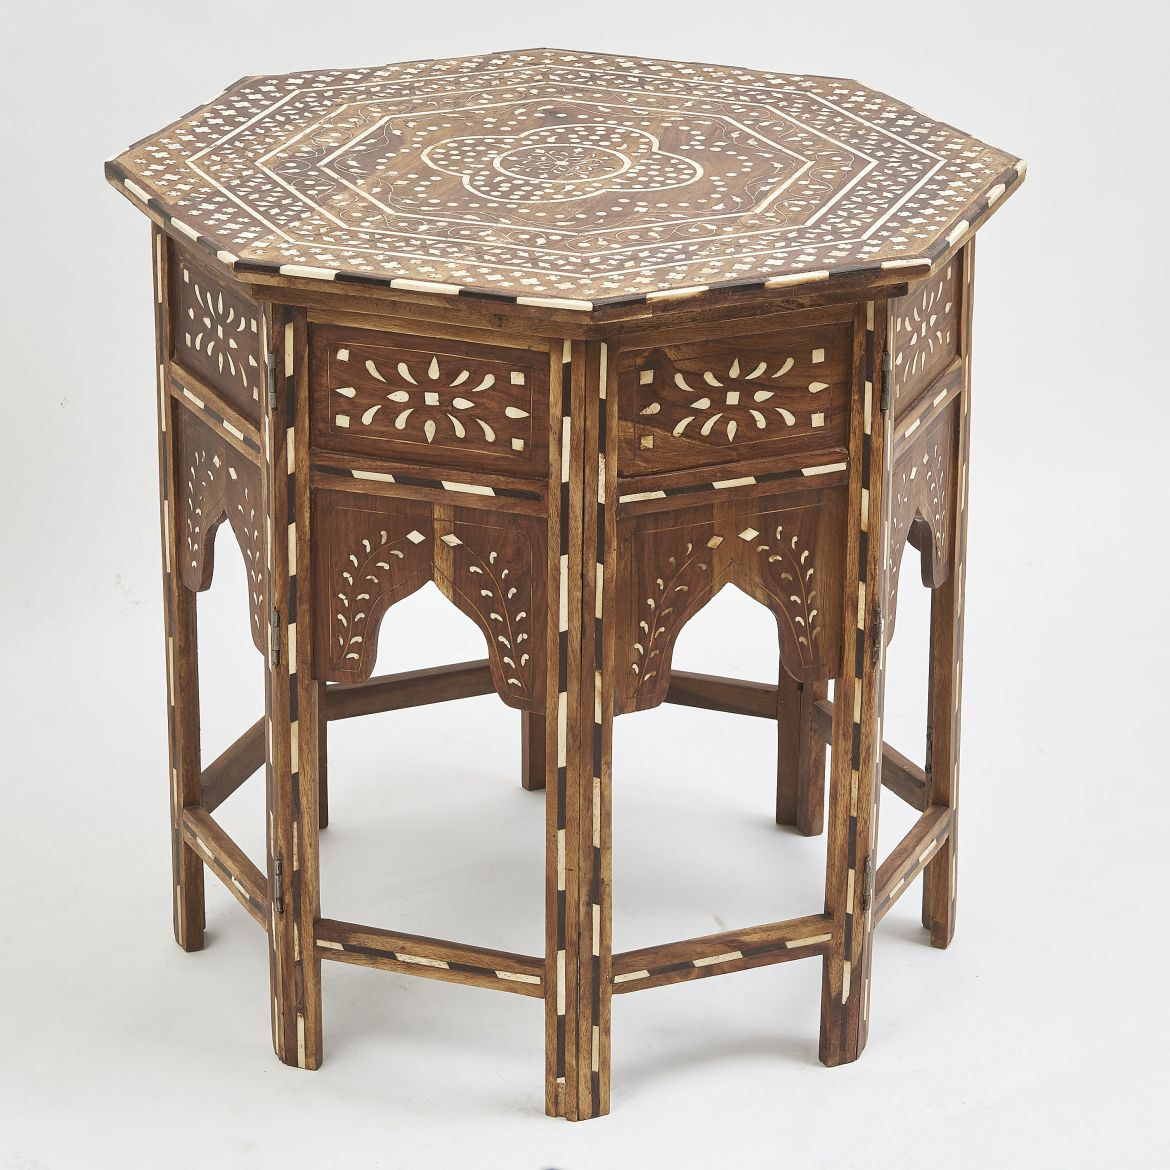 Contemporary Inlaid Table With Floral Design